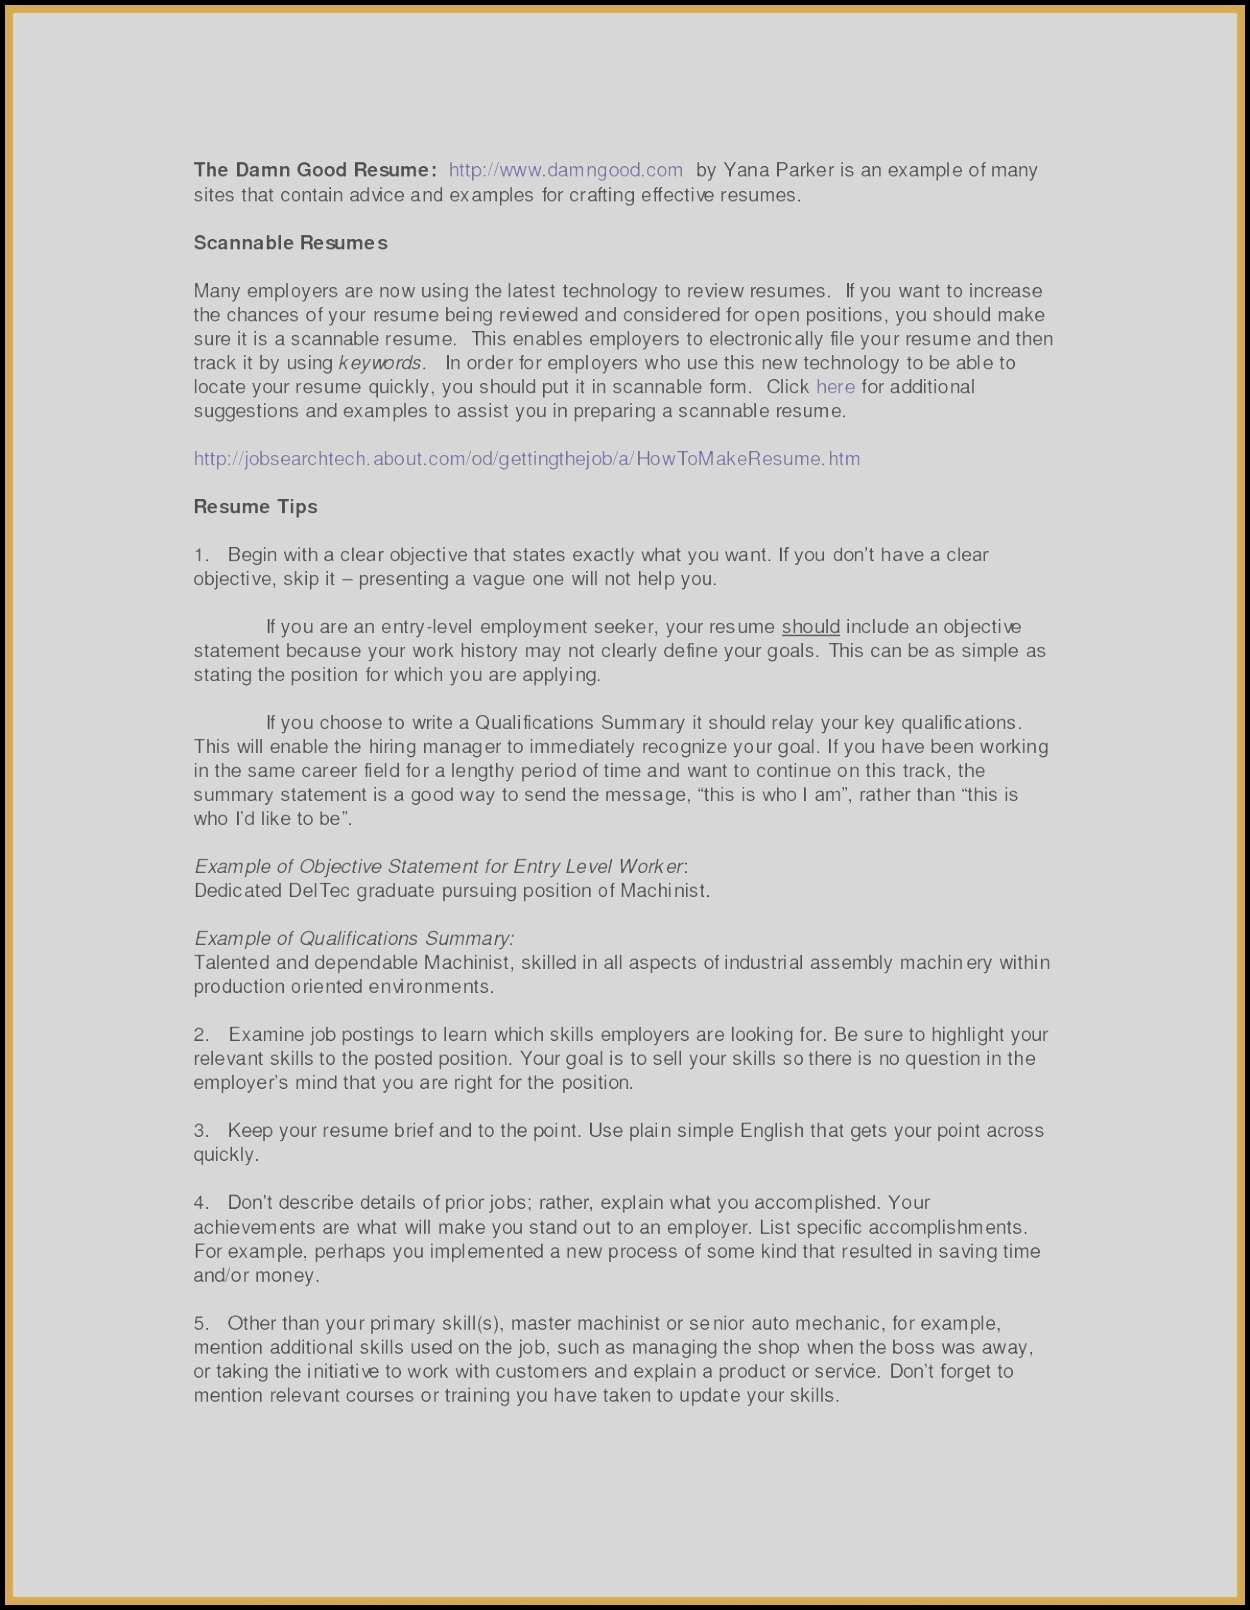 Sample Resume for Project Manager Position - Construction Project Manager Resume Sample Inspirationa Project